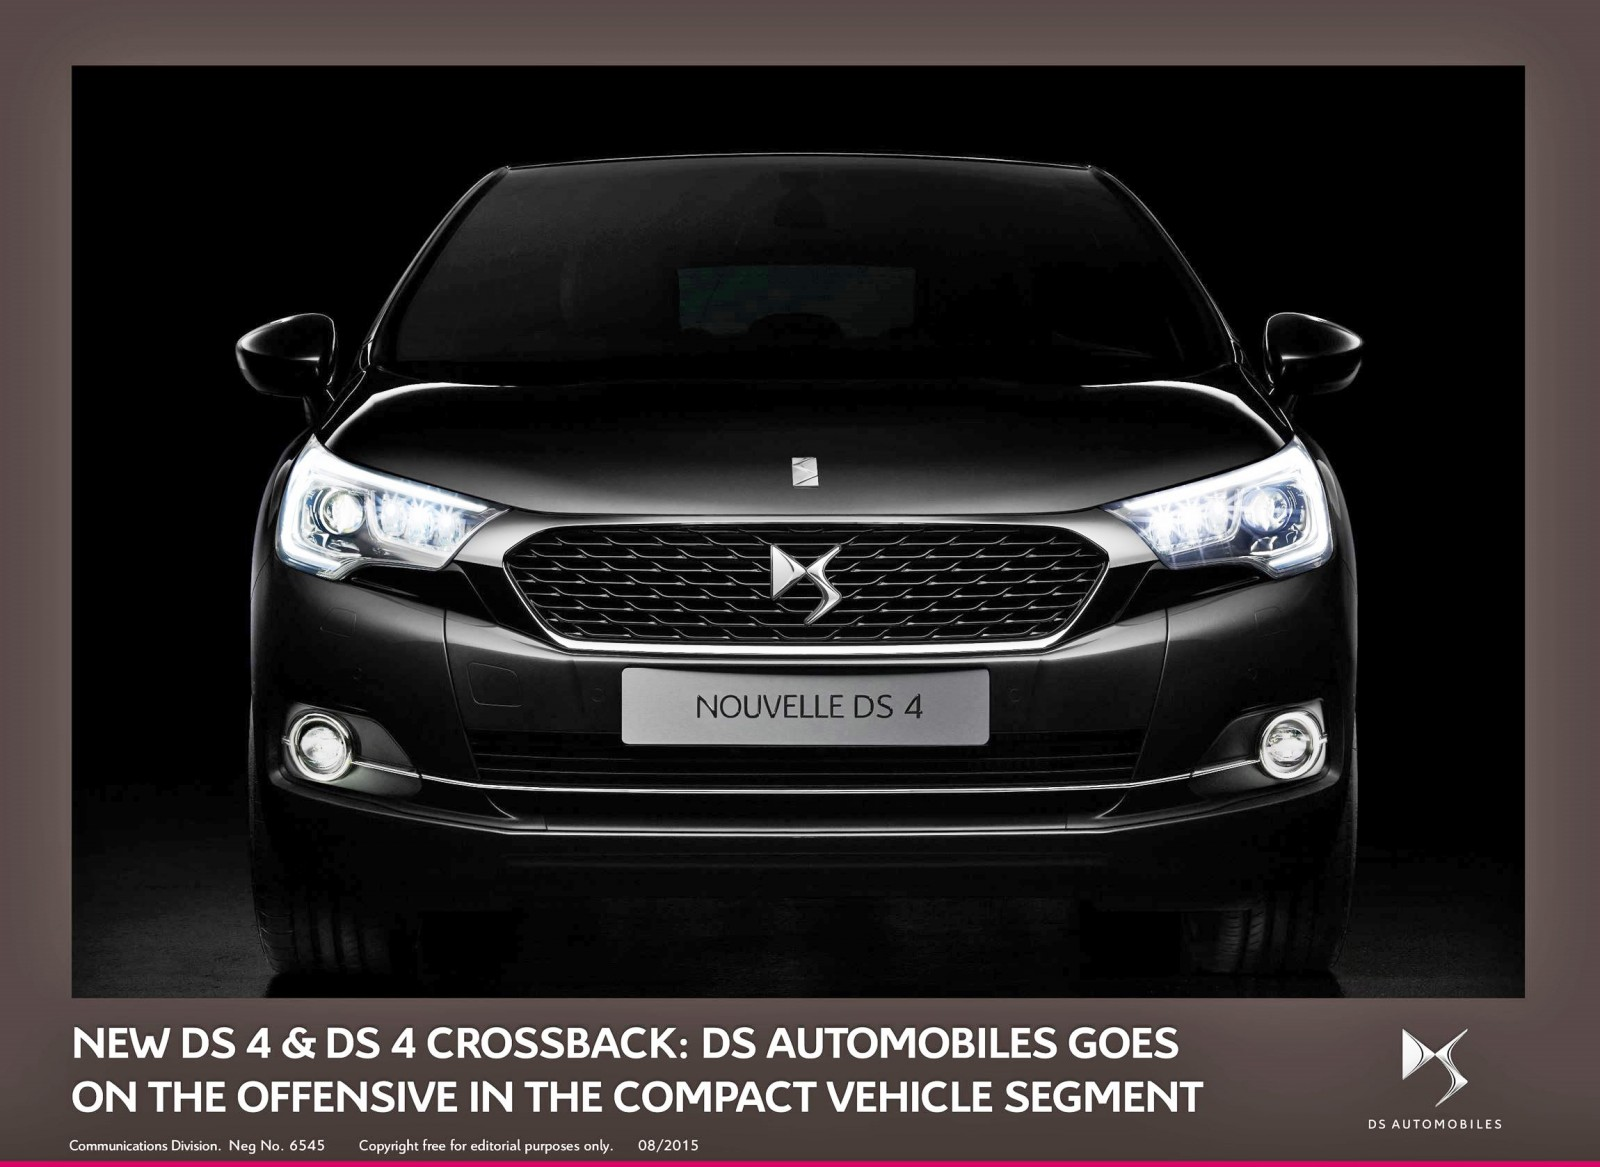 New ds 4 and ds 4 crossback ds takes the offensive in the compact